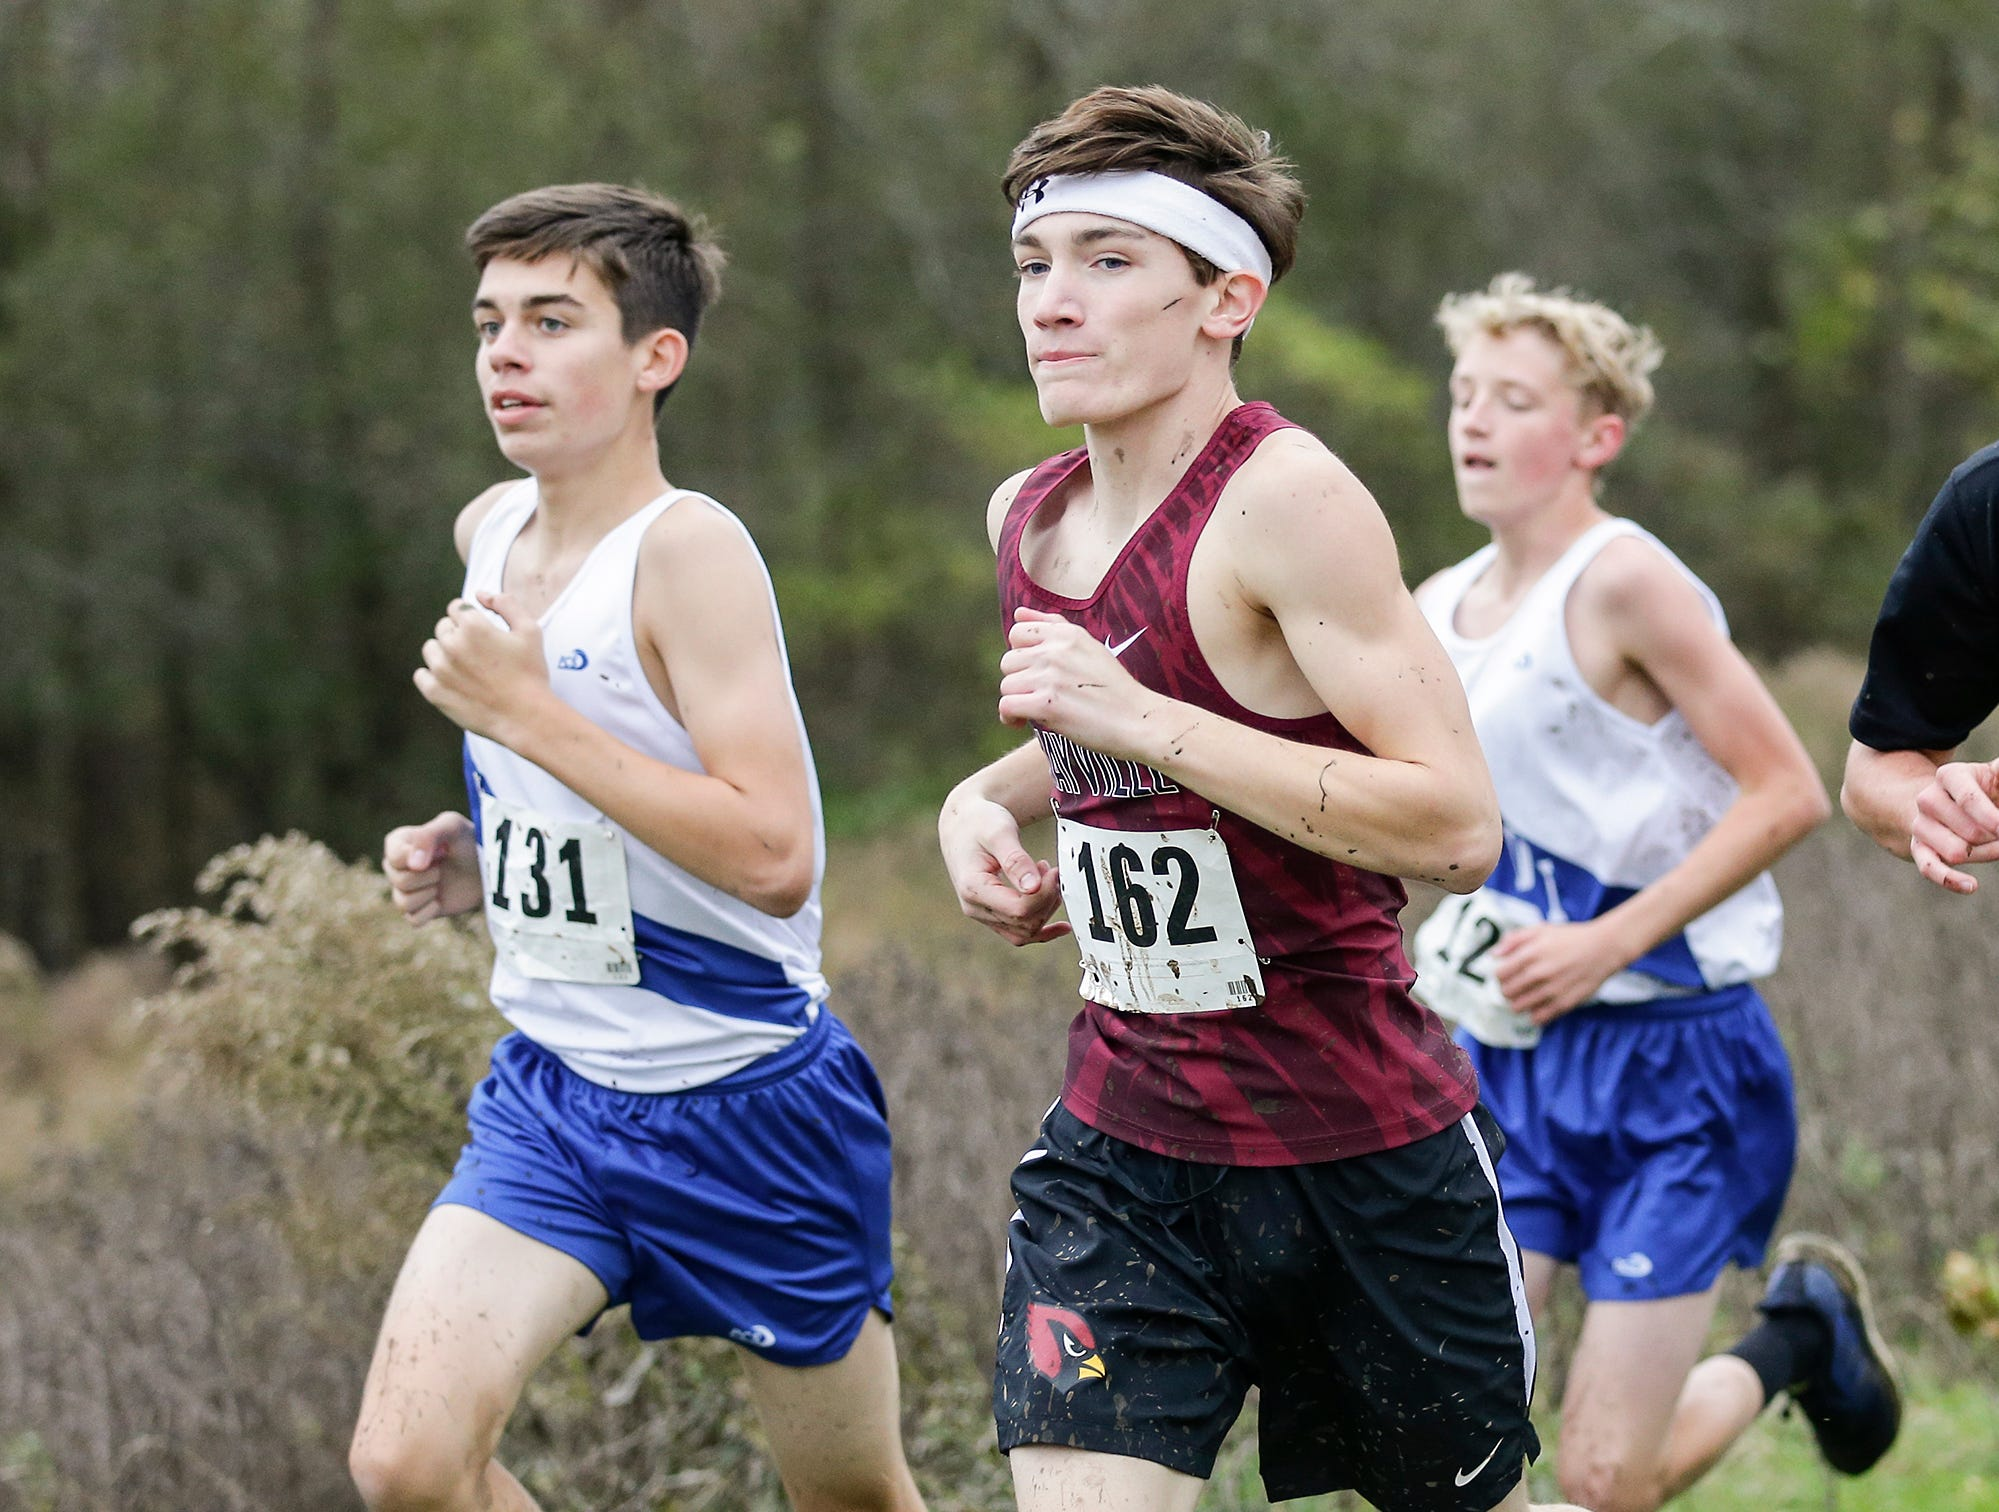 Mayville High School's Paddy McFadden runs in the WIAA Division two Mayville sectional cross country meet at the Mayville golf course Friday, October 19, 2018. Doug Raflik/USA TODAY NETWORK-Wisconsin